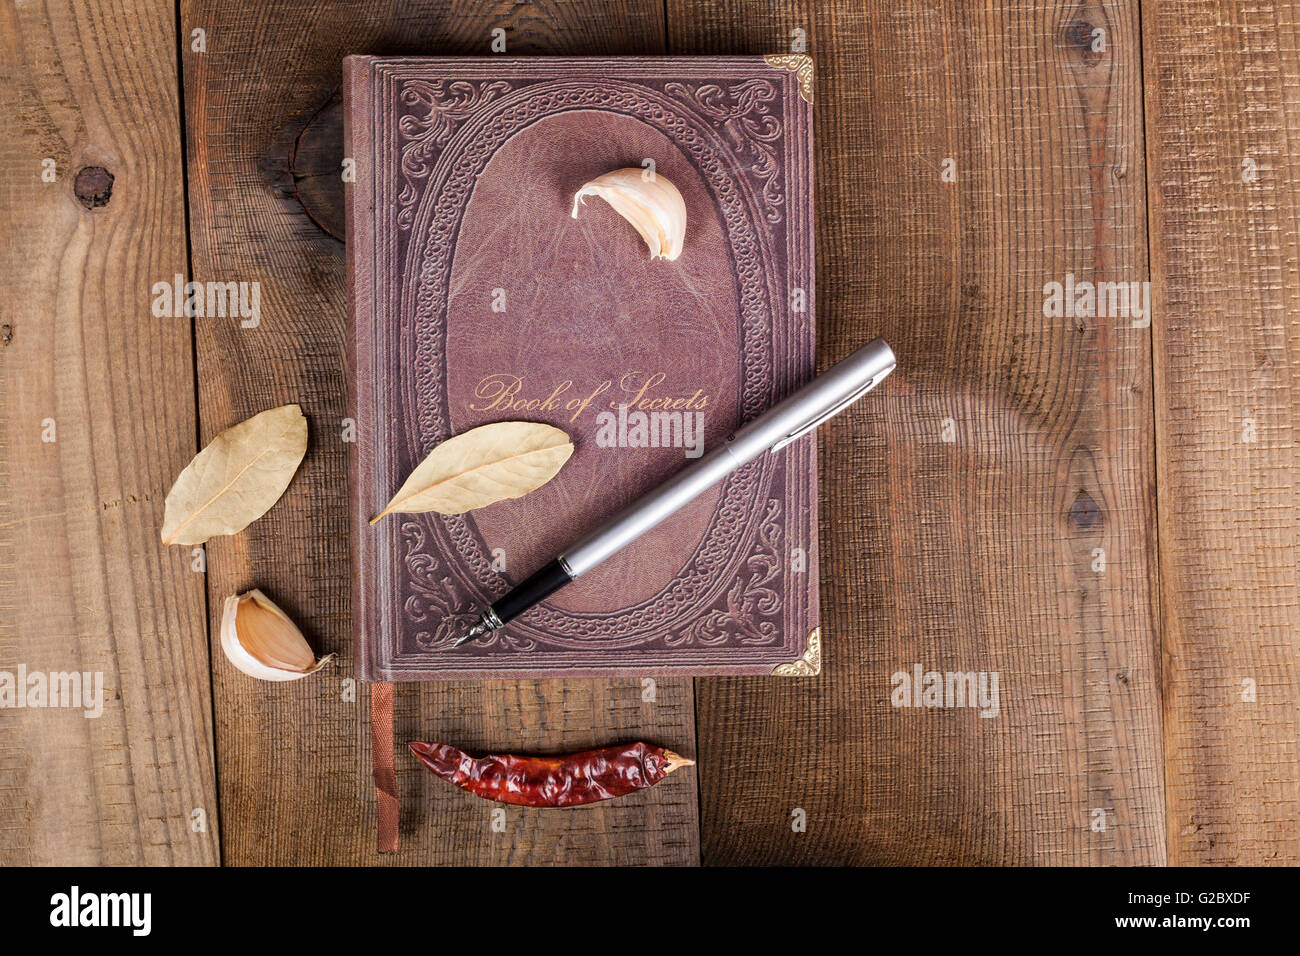 Book of Secrets brown closed cookbook on old wood background with spices - Stock Image